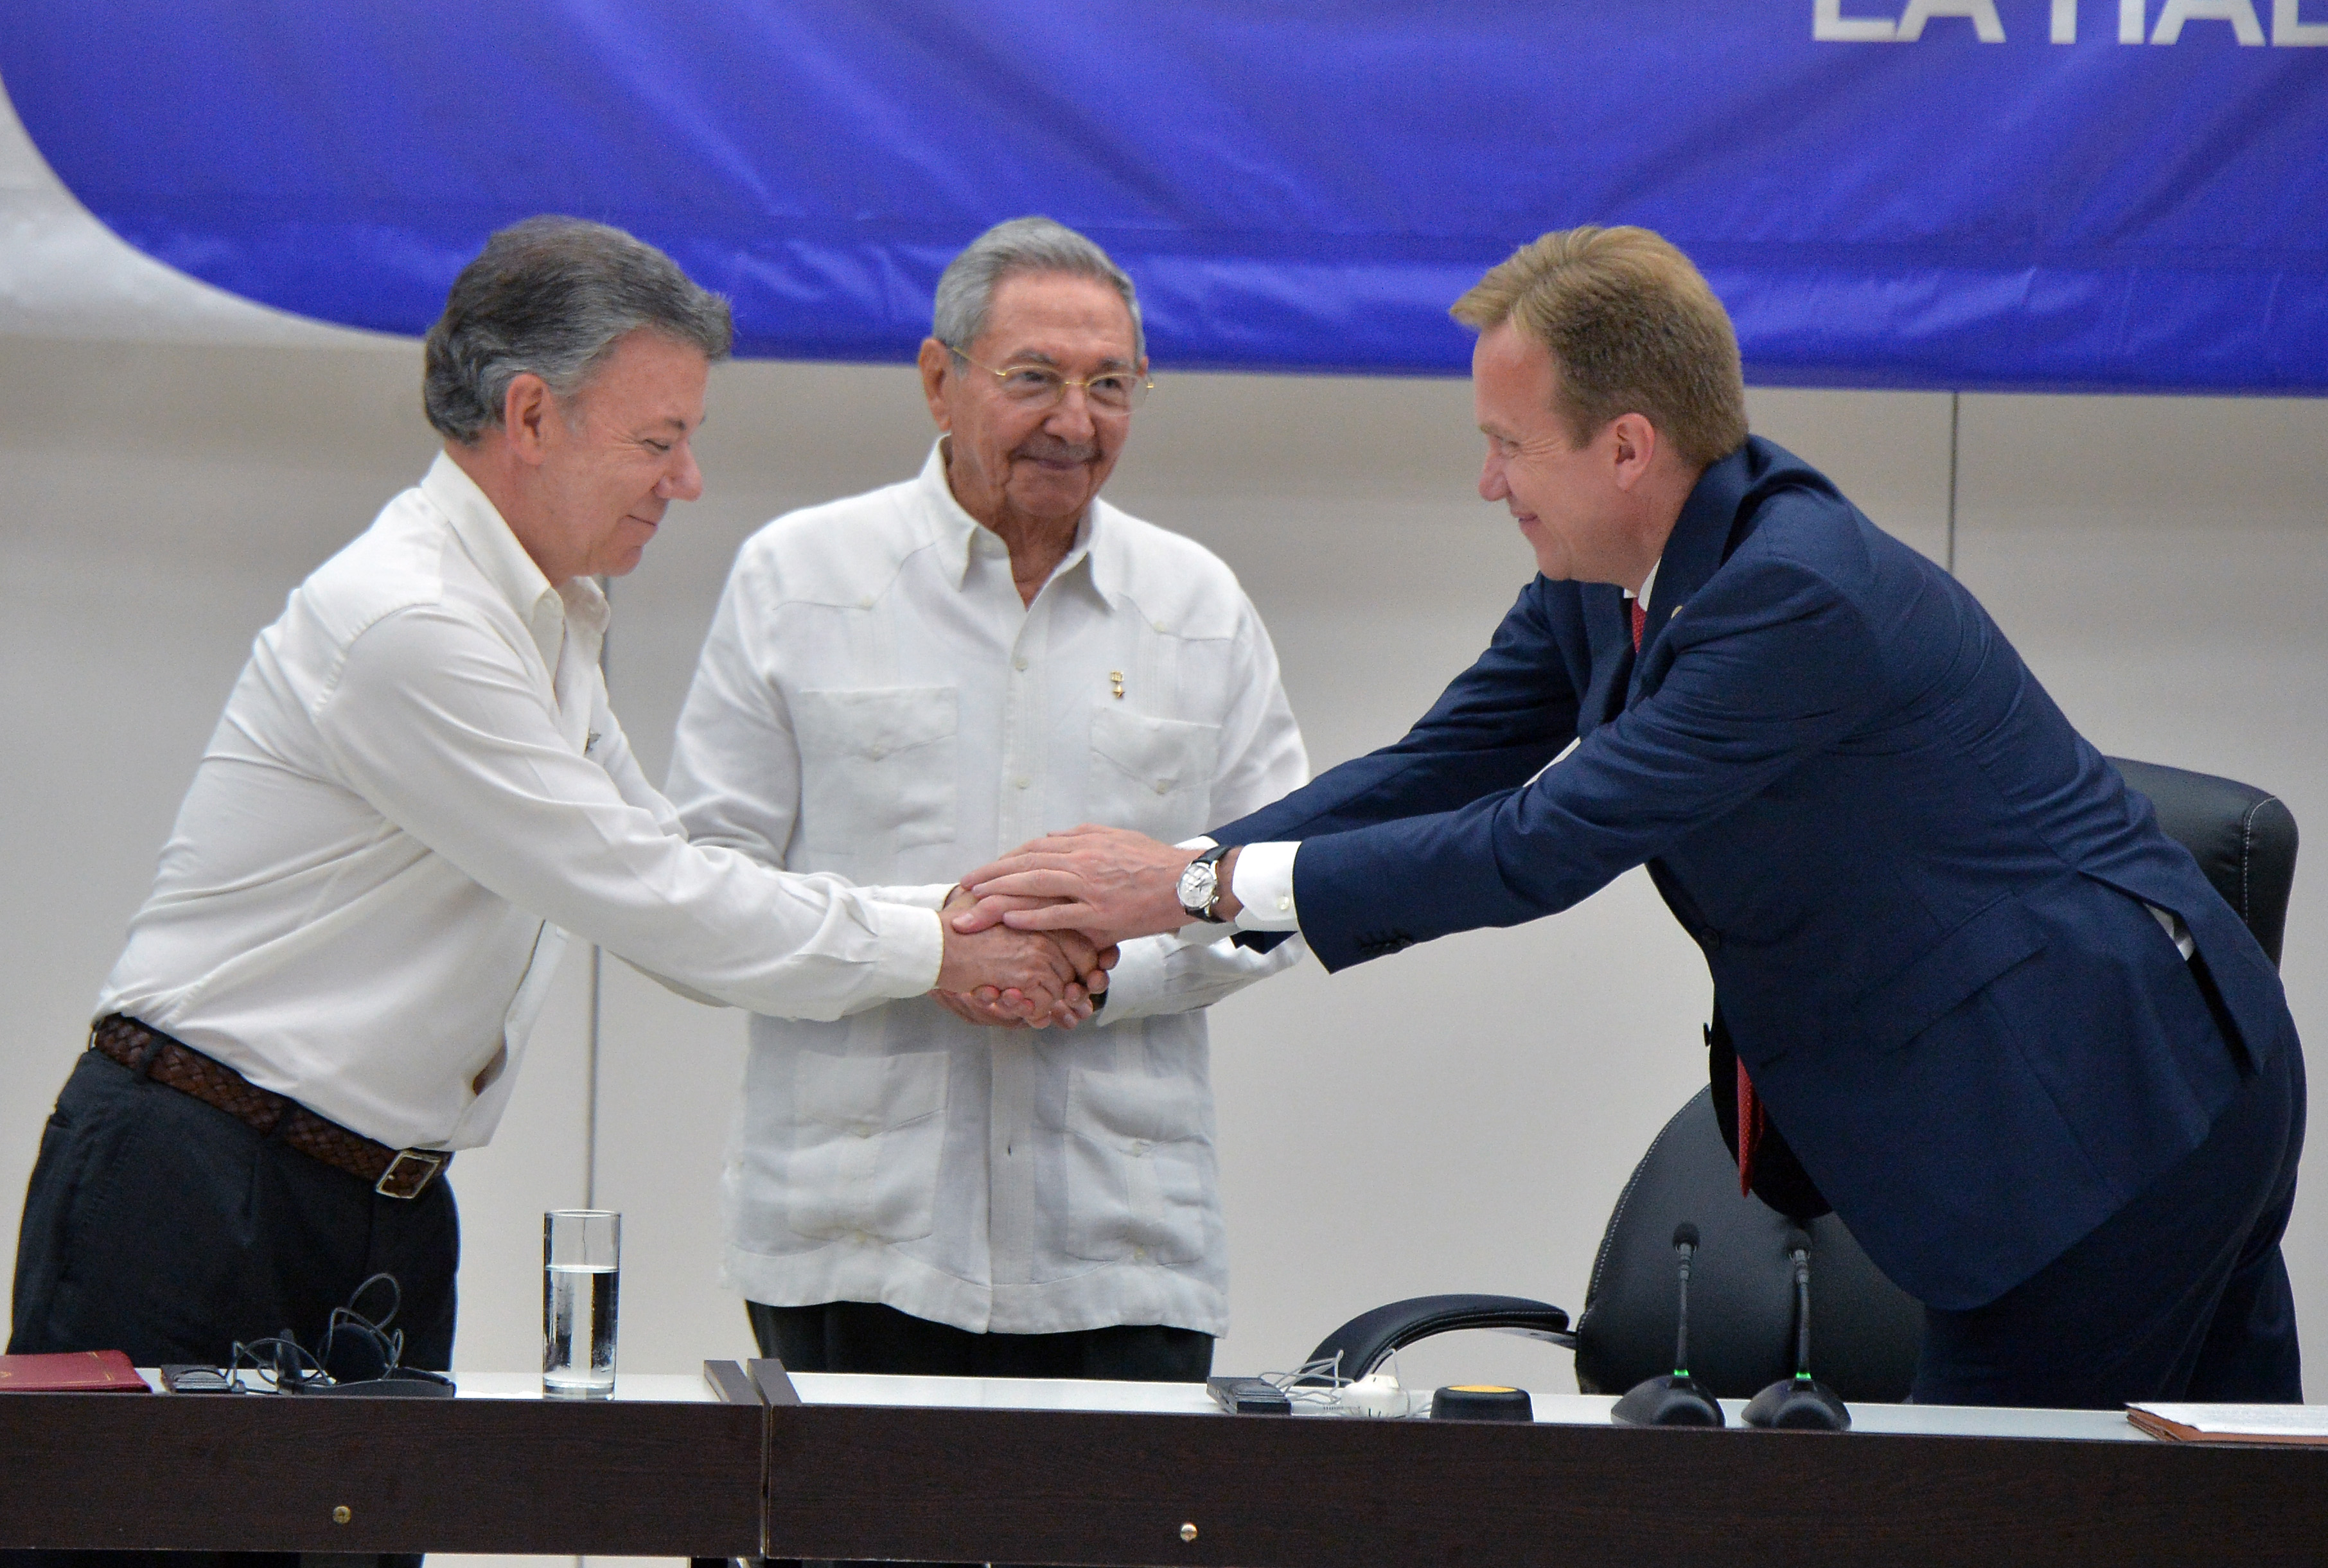 Colombia's President Juan Manuel Santos (L) shakes hands with Norway's Foreign Minister Borge Brende, as Cuban President Raul Castro (C) looks on during the signing of the ceasefire between the Colombian government and the FARC guerrilla, in Havana on June 23, 2016. Colombia's government and the FARC guerrilla force signed a definitive ceasefire Thursday, taking one of the last crucial steps toward ending Latin America's longest civil war. / AFP PHOTO / ADALBERTO ROQUE